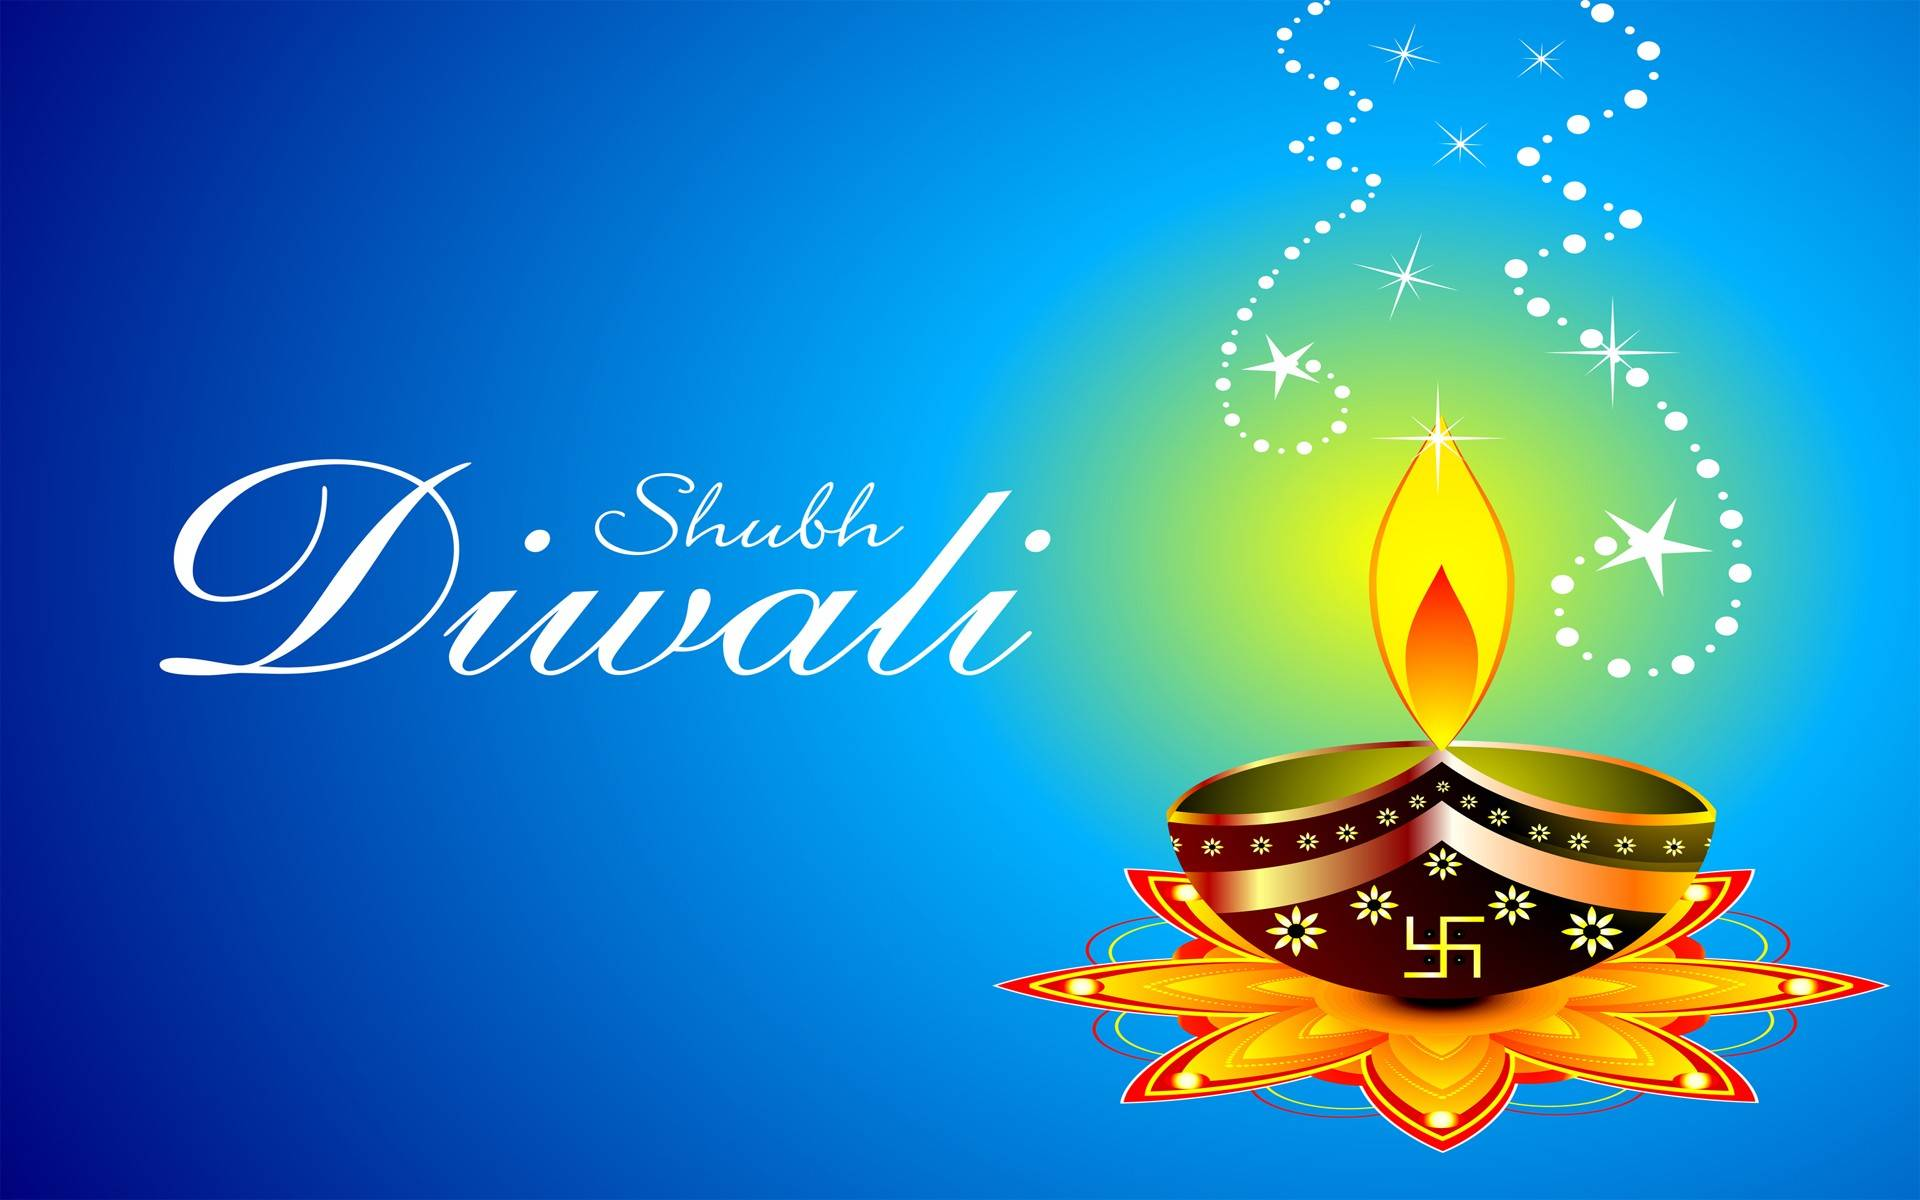 happy diwali images hd wallpapers for facebook and whatsapp